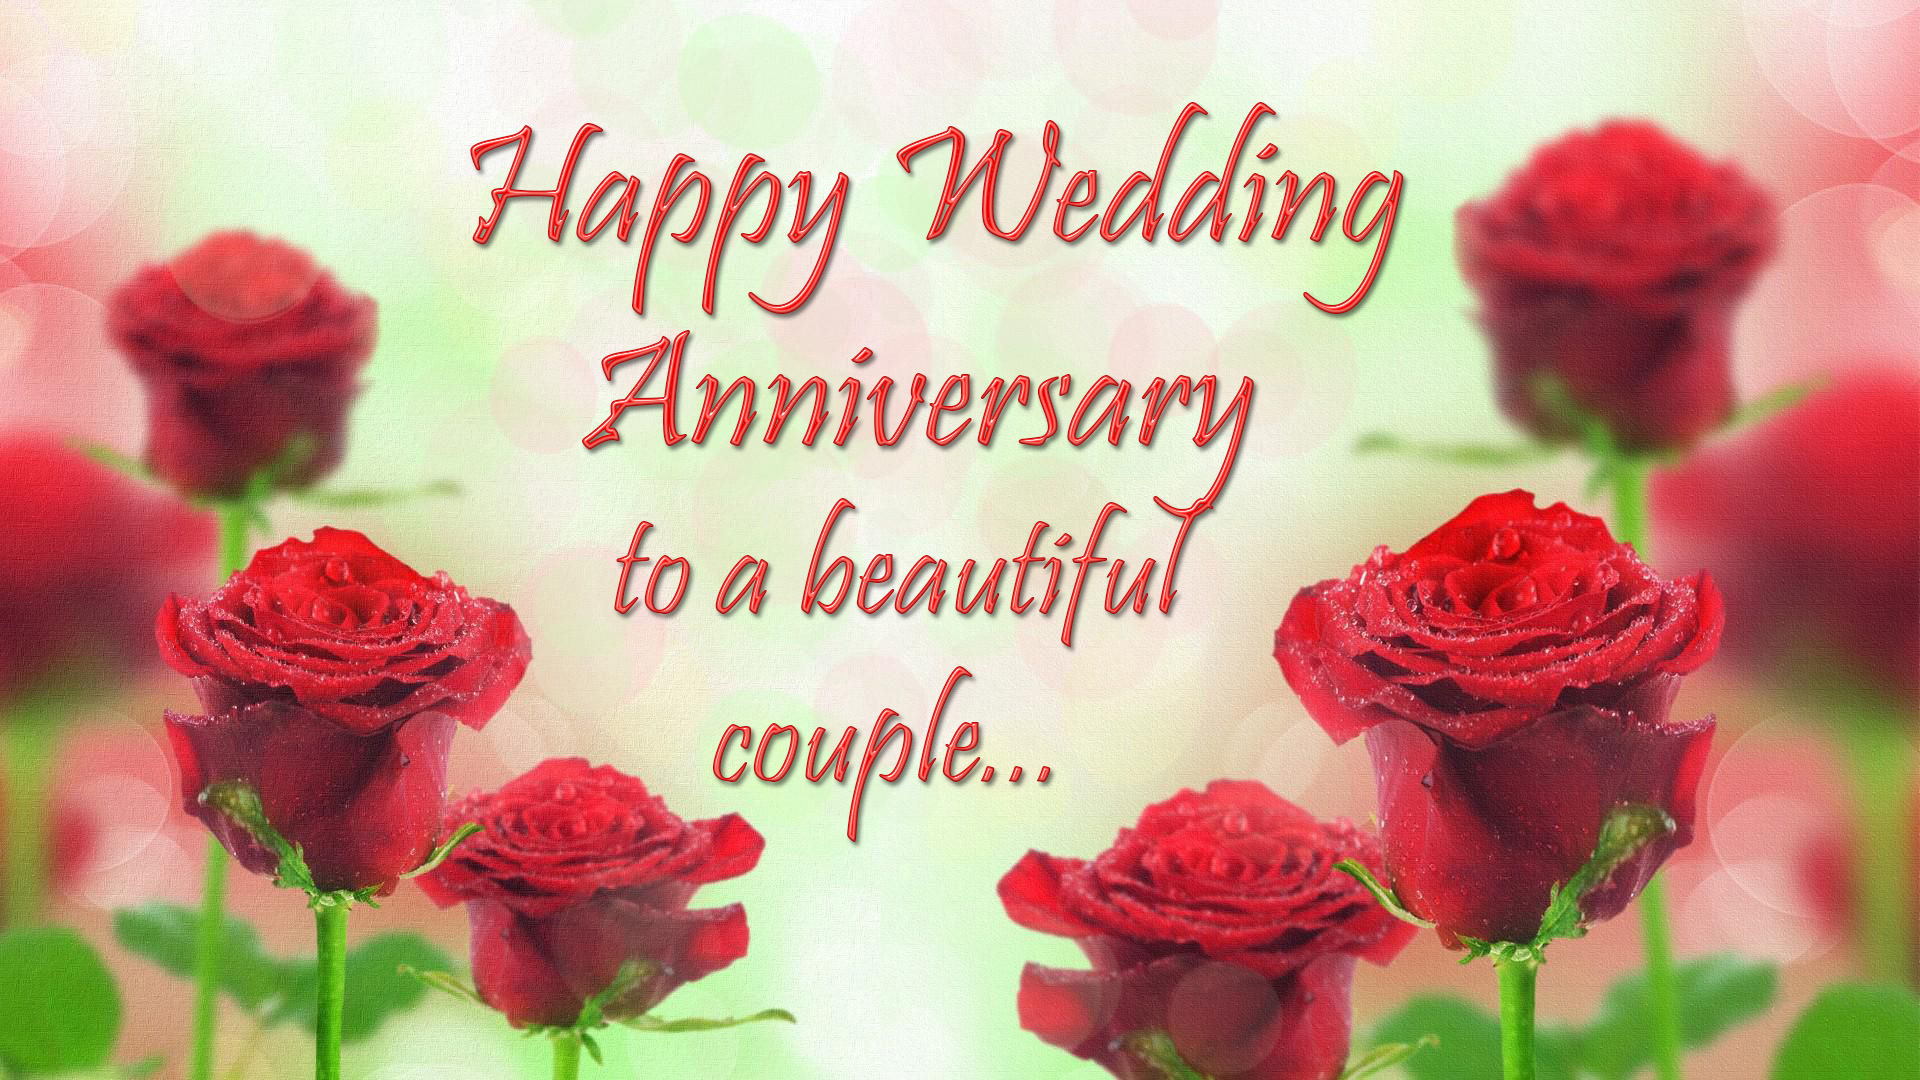 how to wish someone on their wedding anniversary